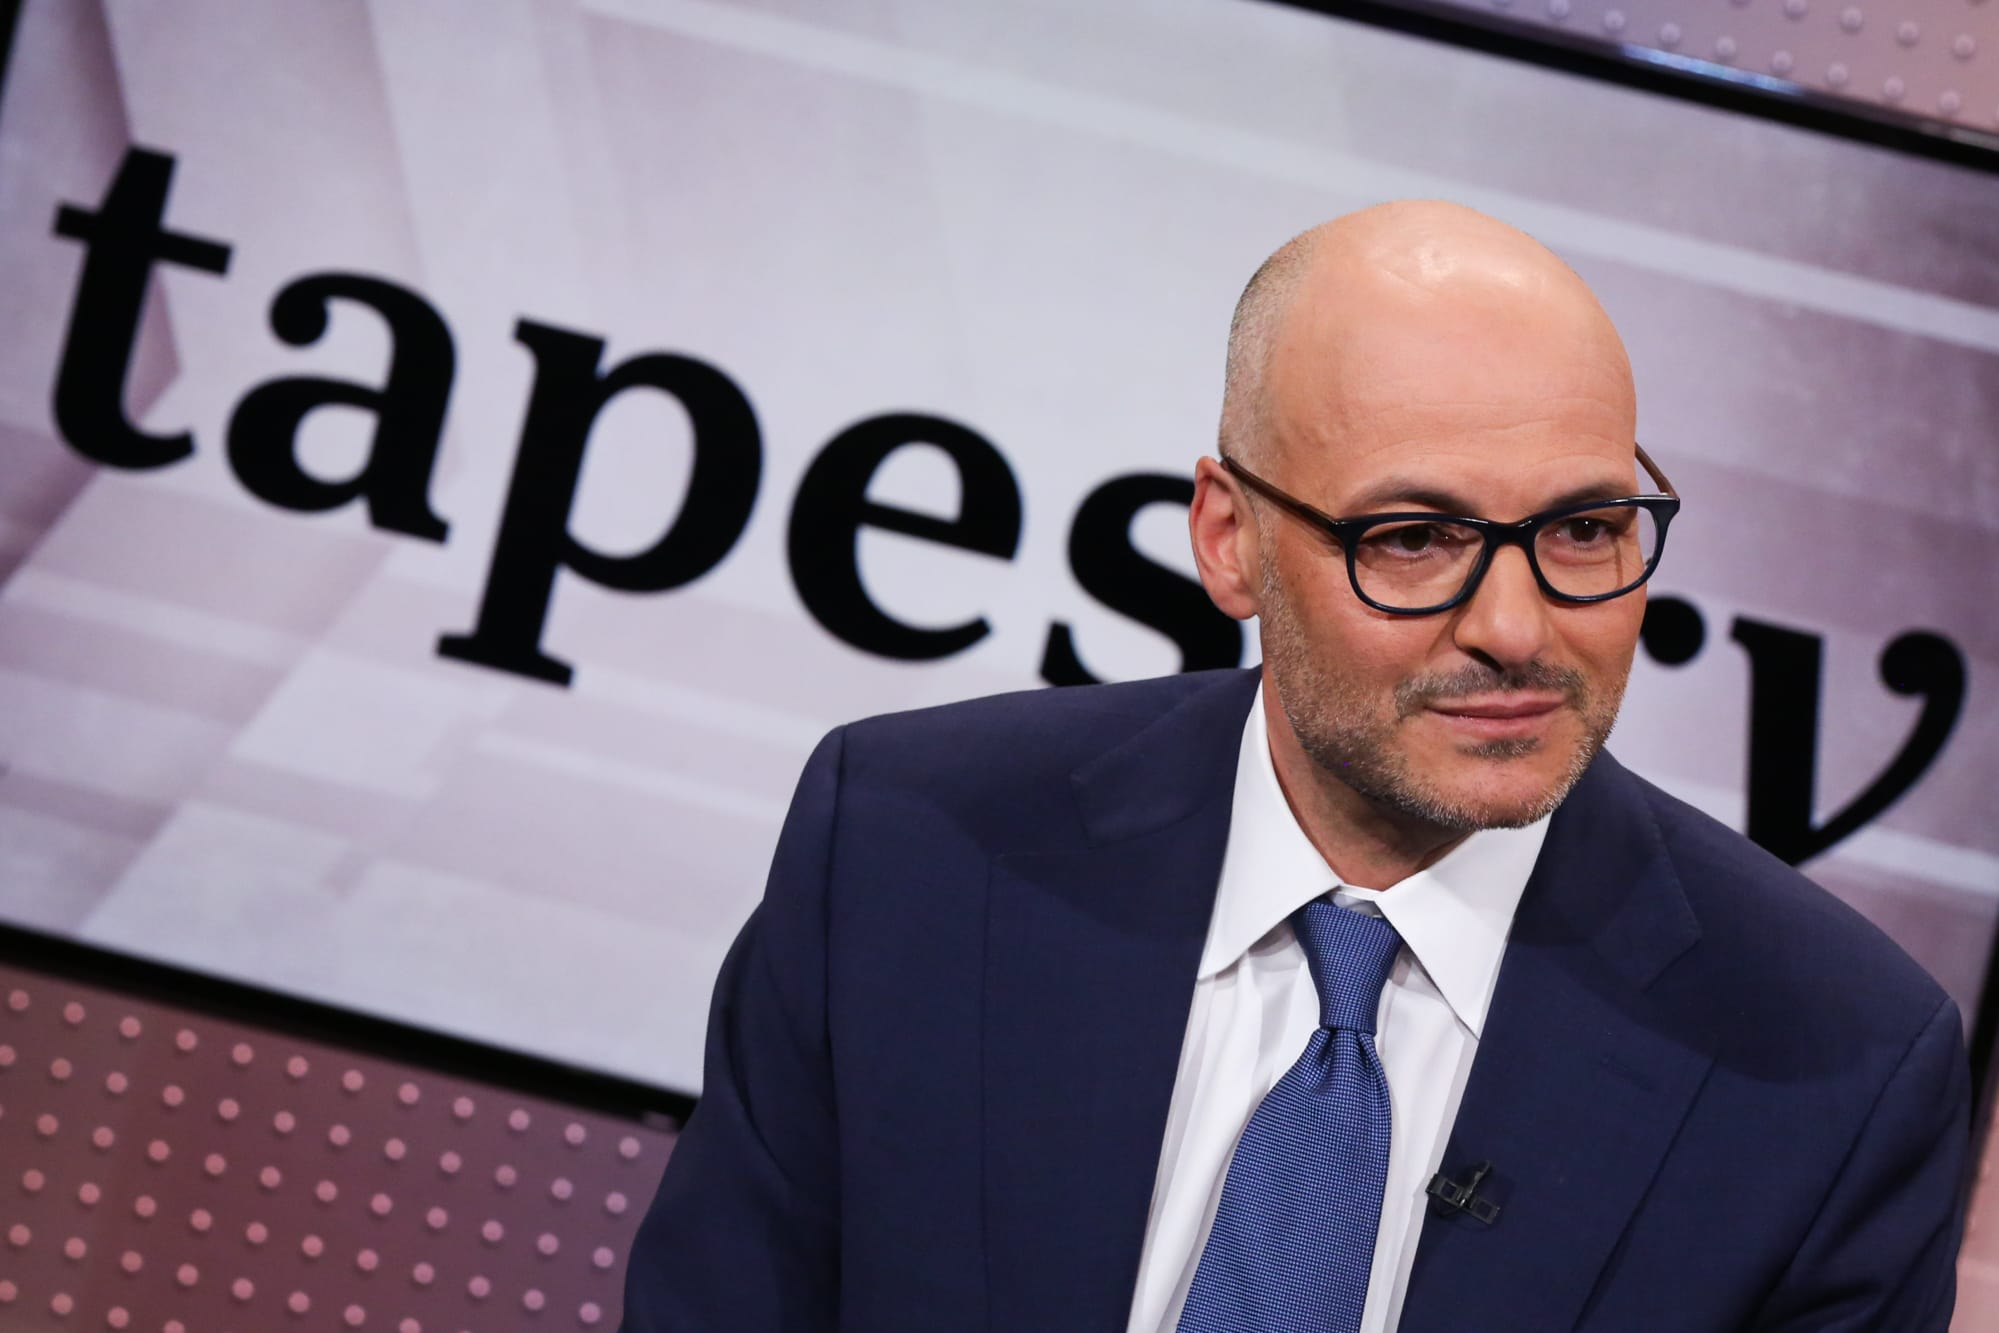 Tapestry CEO Victor Luis steps down